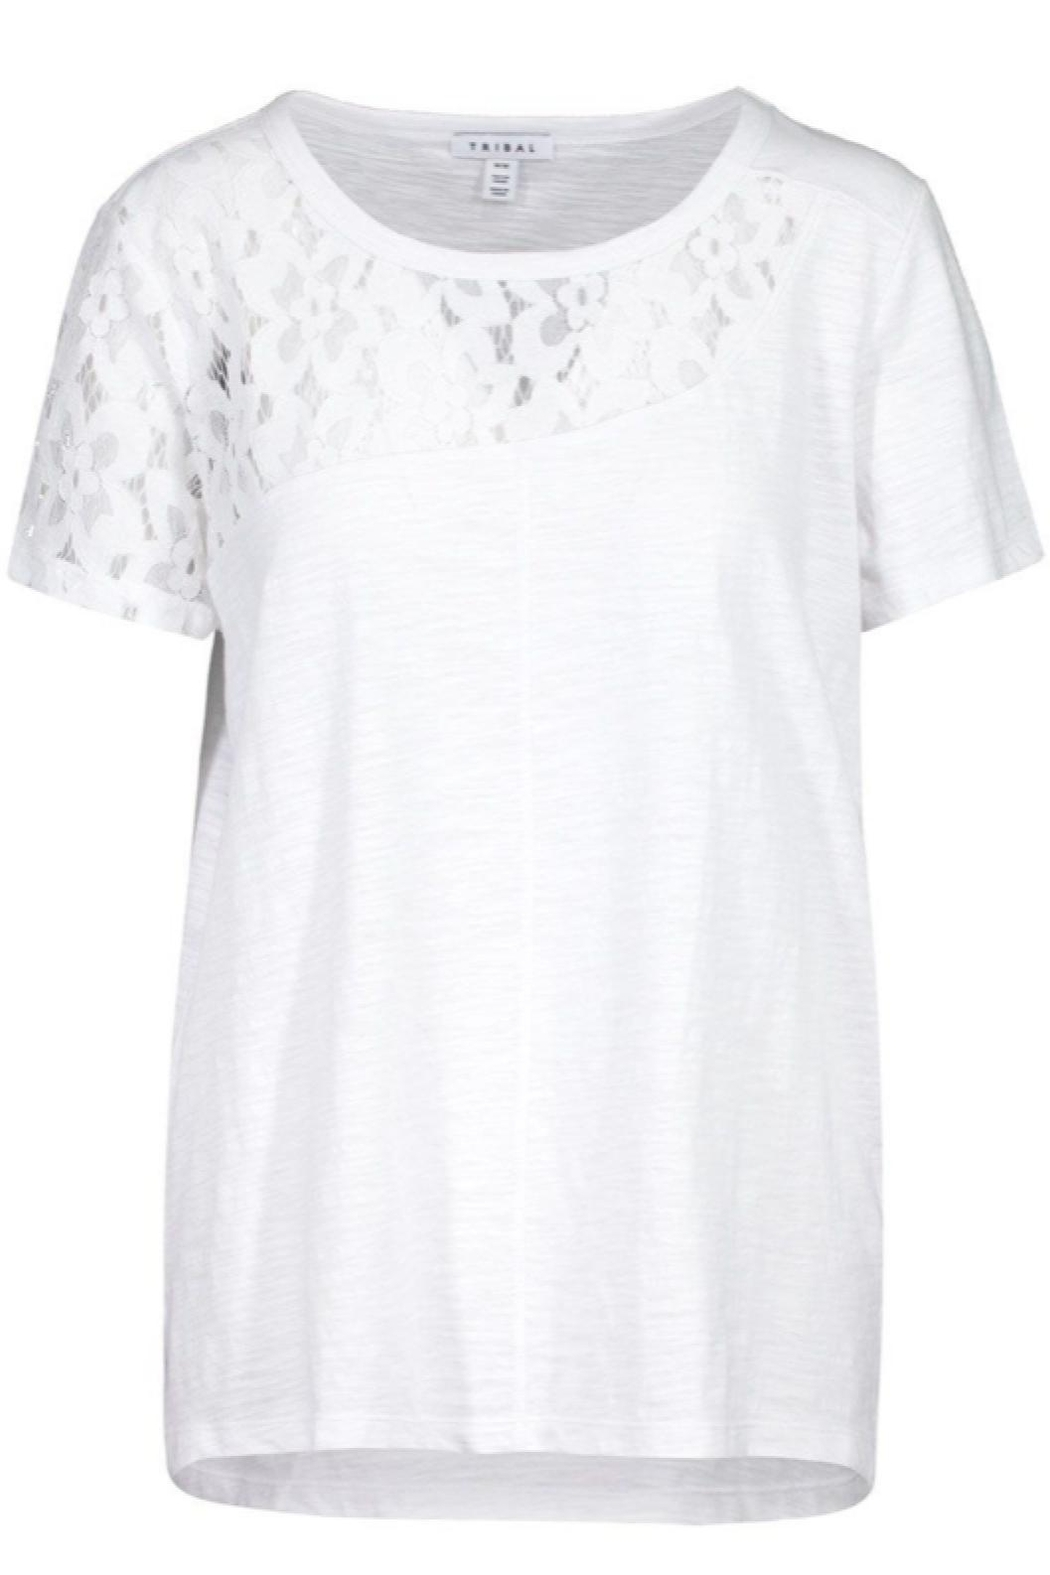 Tribal Lace Insert Tee - Front Cropped Image